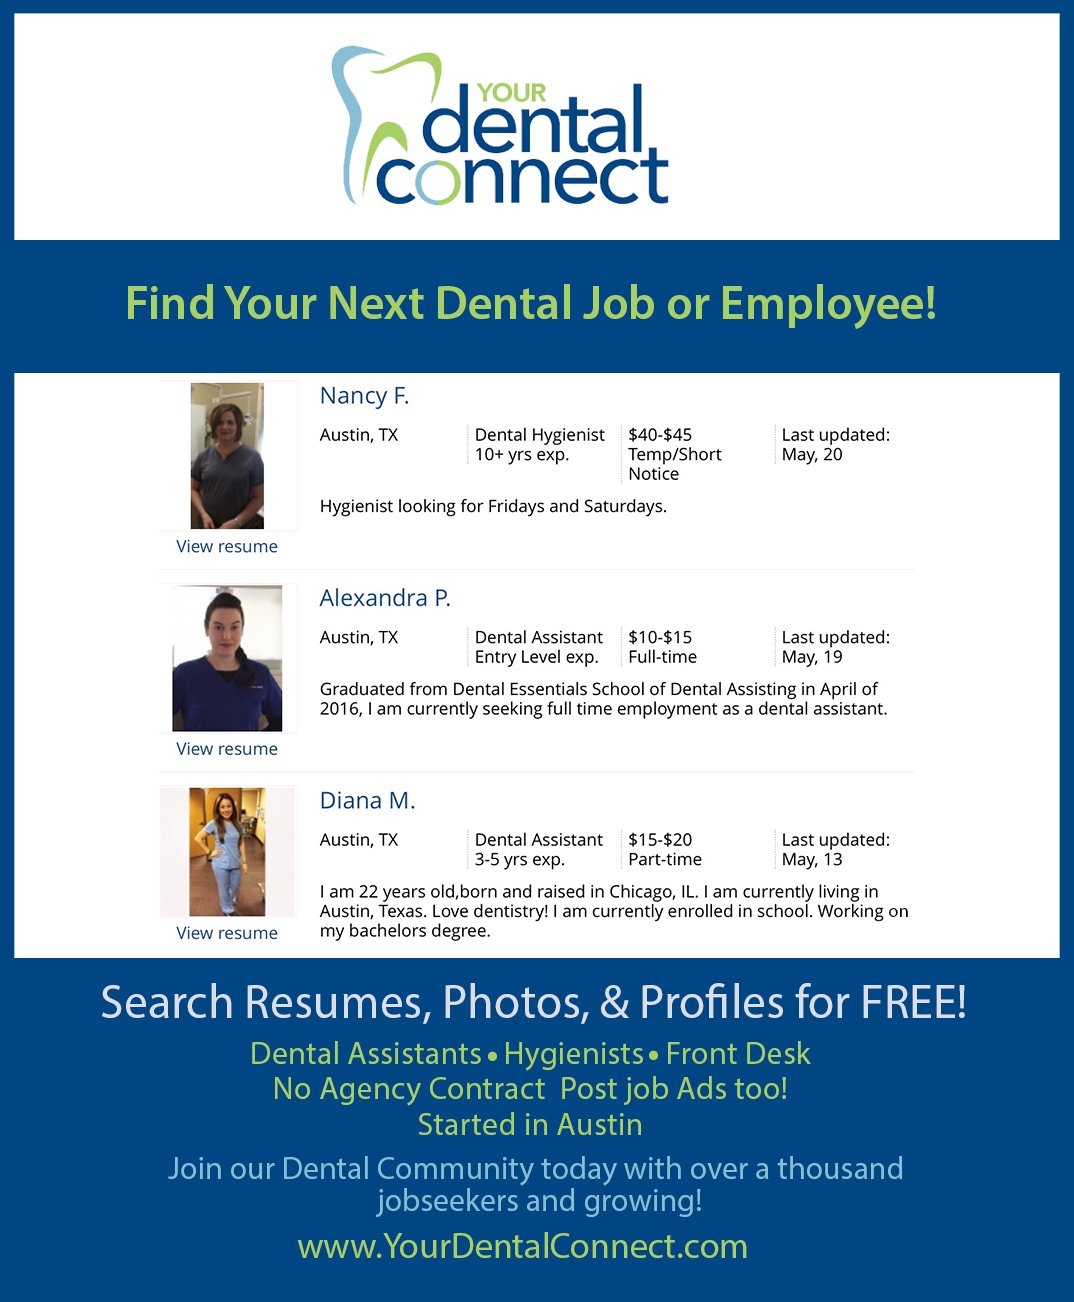 Your Dental Connect On Twitter Artisticdental Dentaljob Dentalassistant Dentalfrontdesk Dental New Dental Jobs In Austin Texas Https T Co 2ykwudw7ua Https T Co Ycyshkxbhm